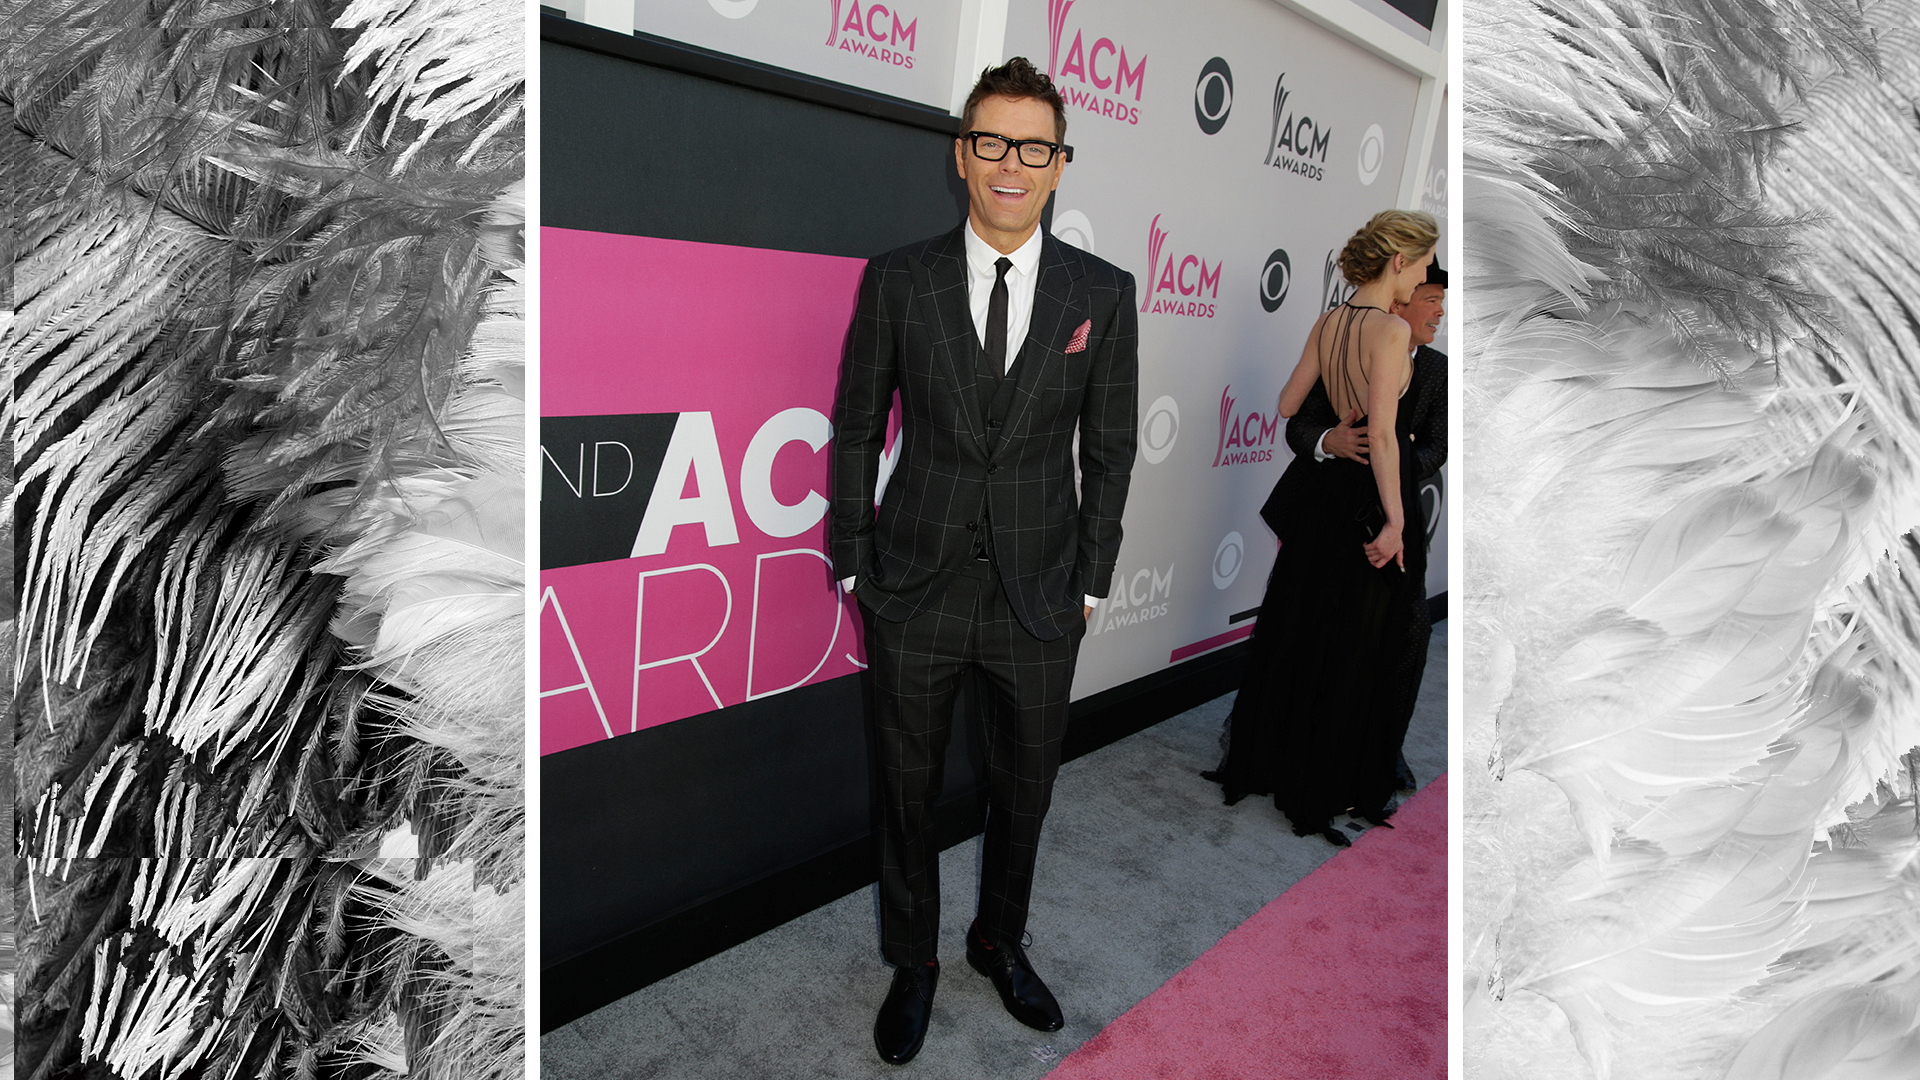 iHeartRadio personality Bobby Bones sports a polished suit at the 52nd ACM Awards.